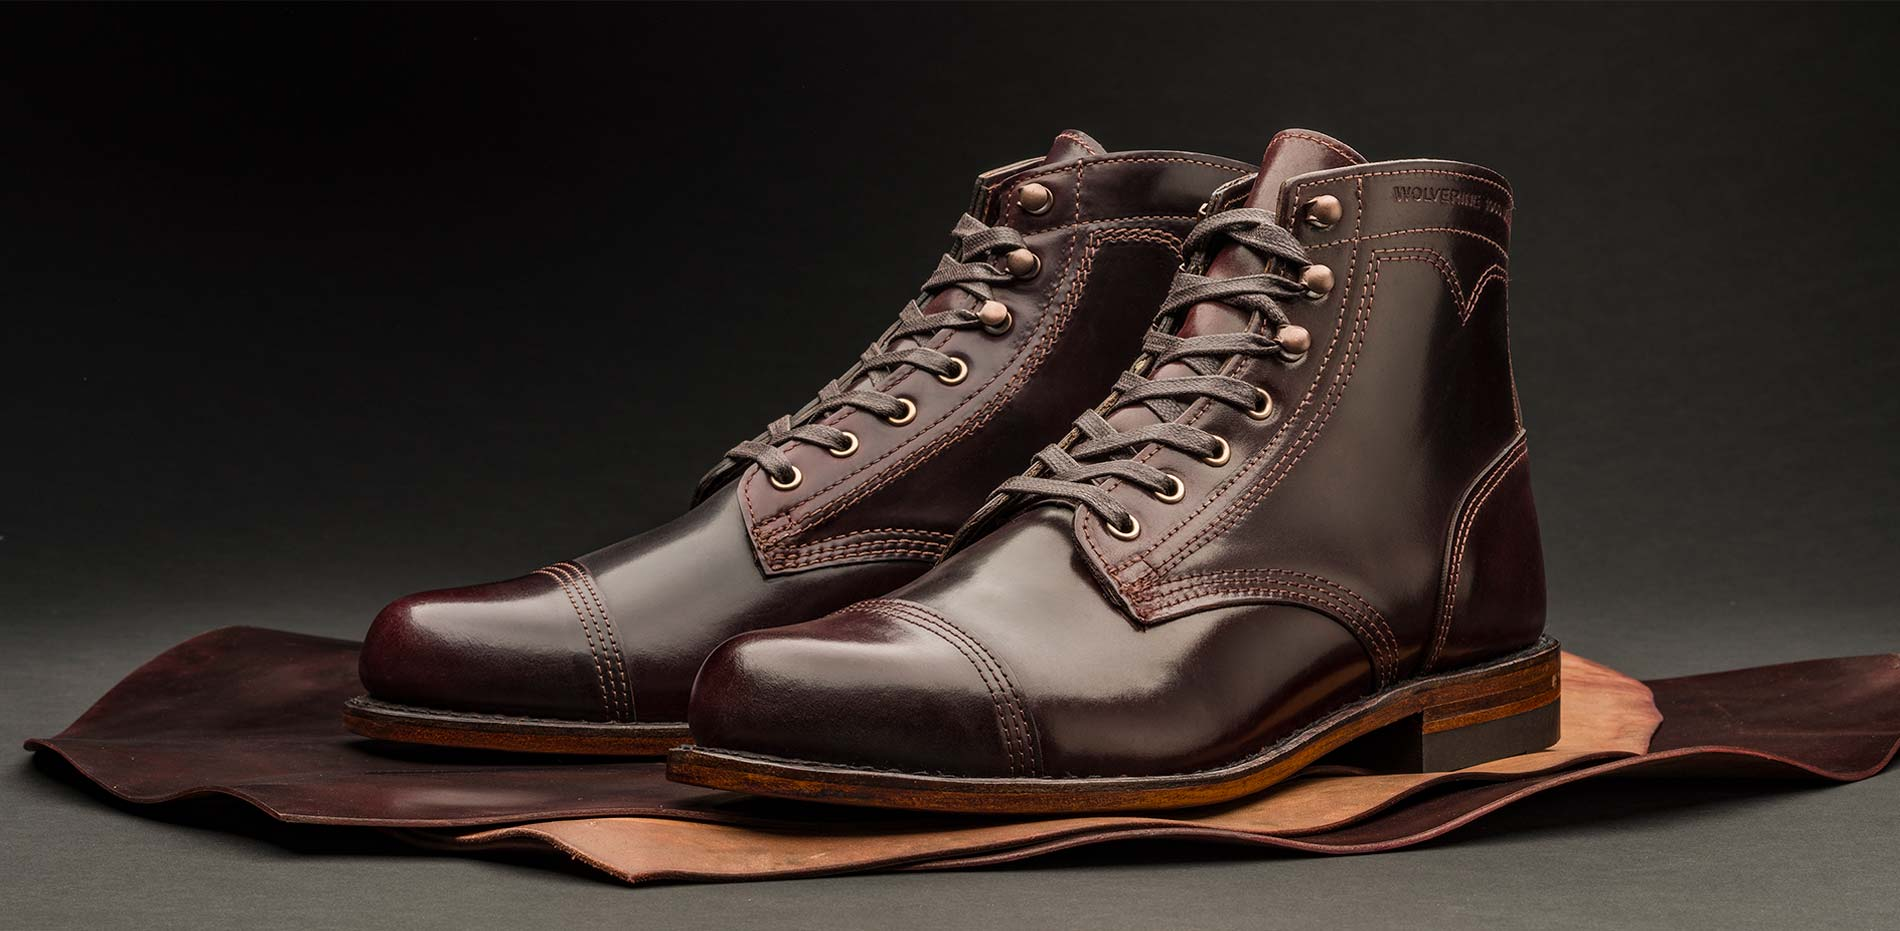 Wolverine 1000 Mile 1883 Vintage Boots D Island Shoes Casual Zappato England Suede Dark Brown See That Shell